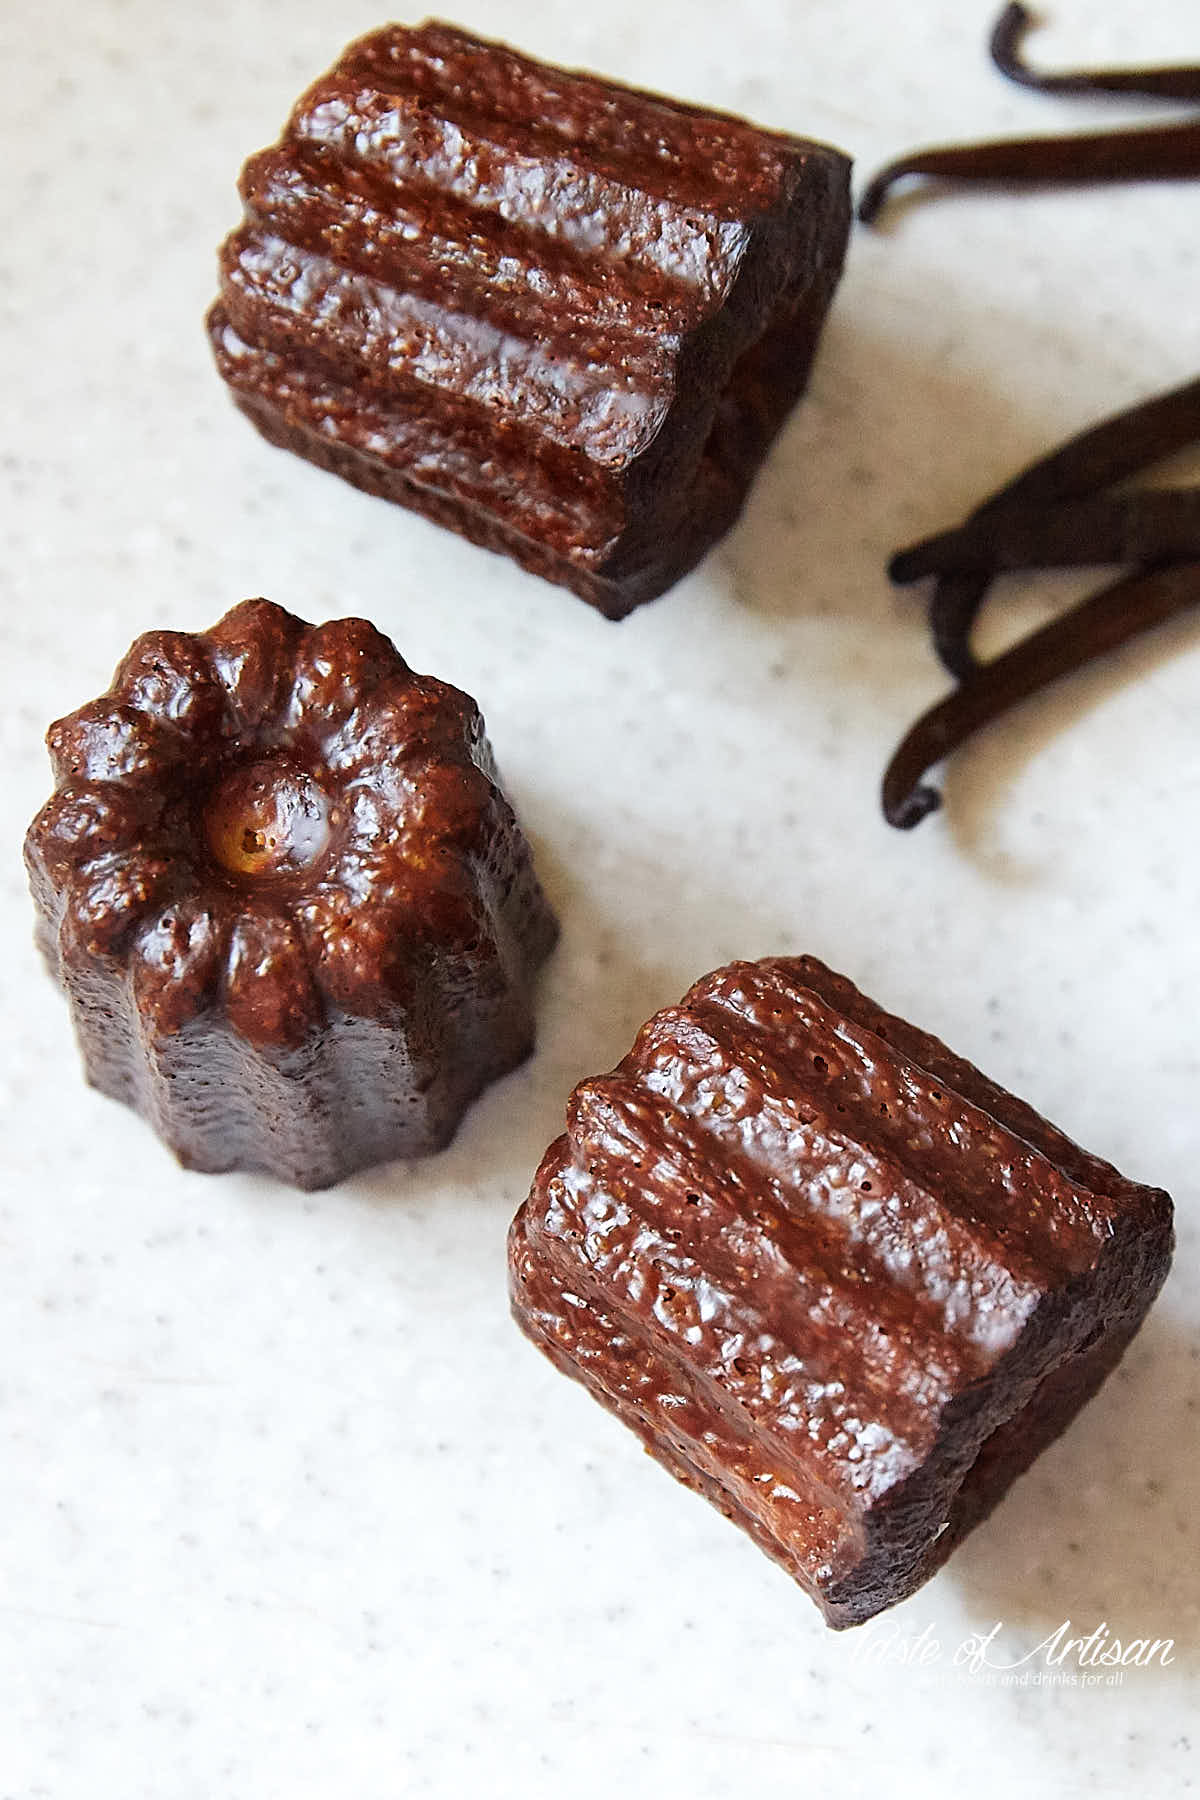 Caneles and vanilla beans on a white table top.